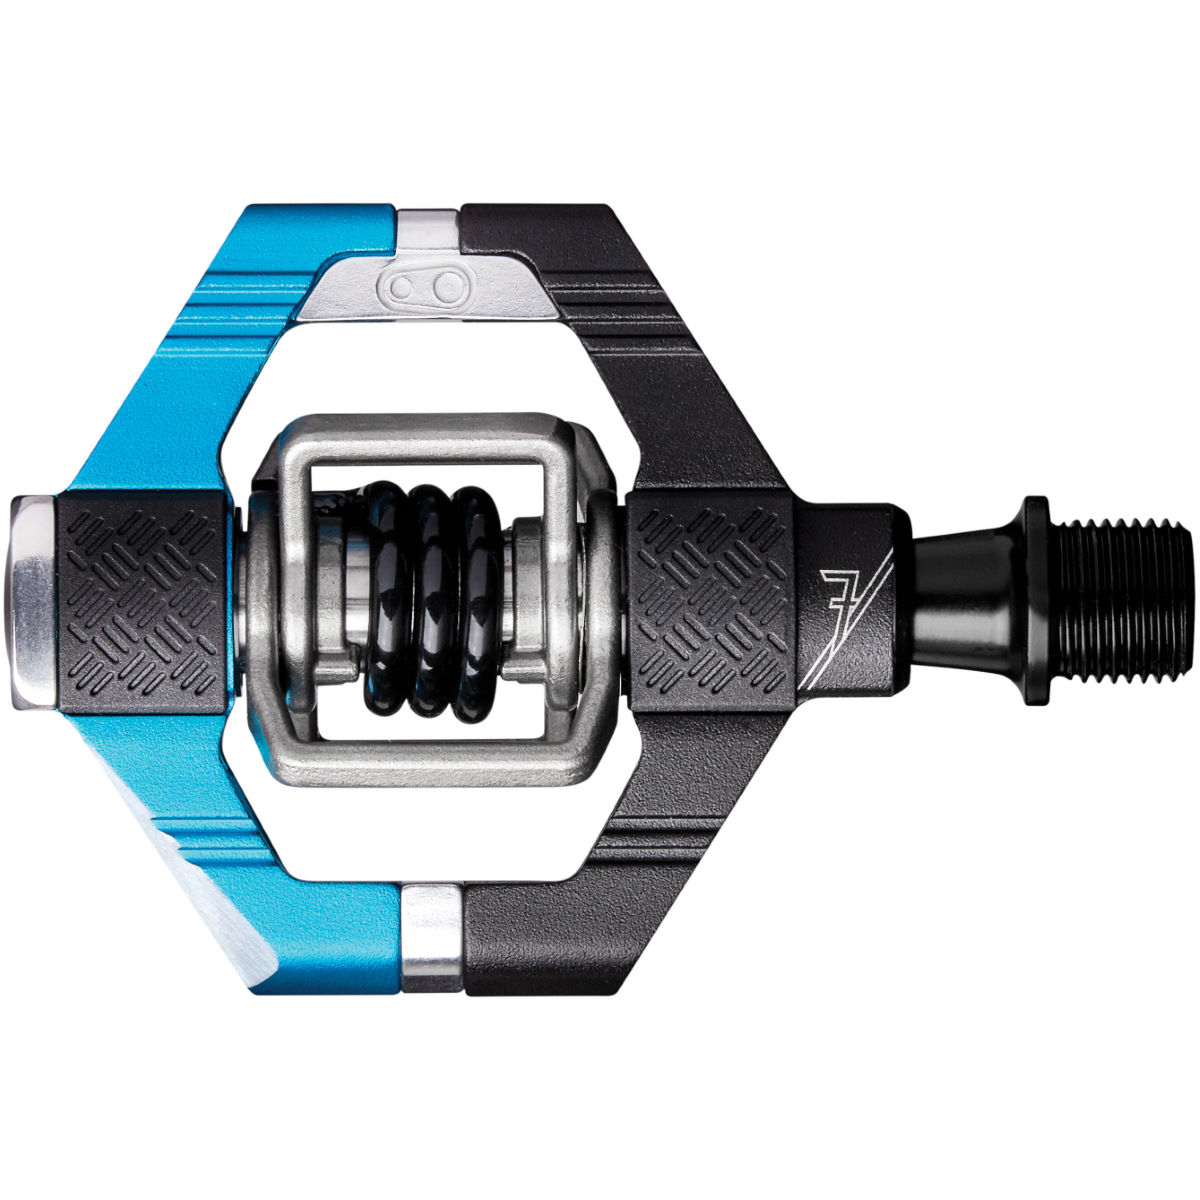 Crank Brothers Candy 7 Clipless MTB Pedals - Pedales automáticos